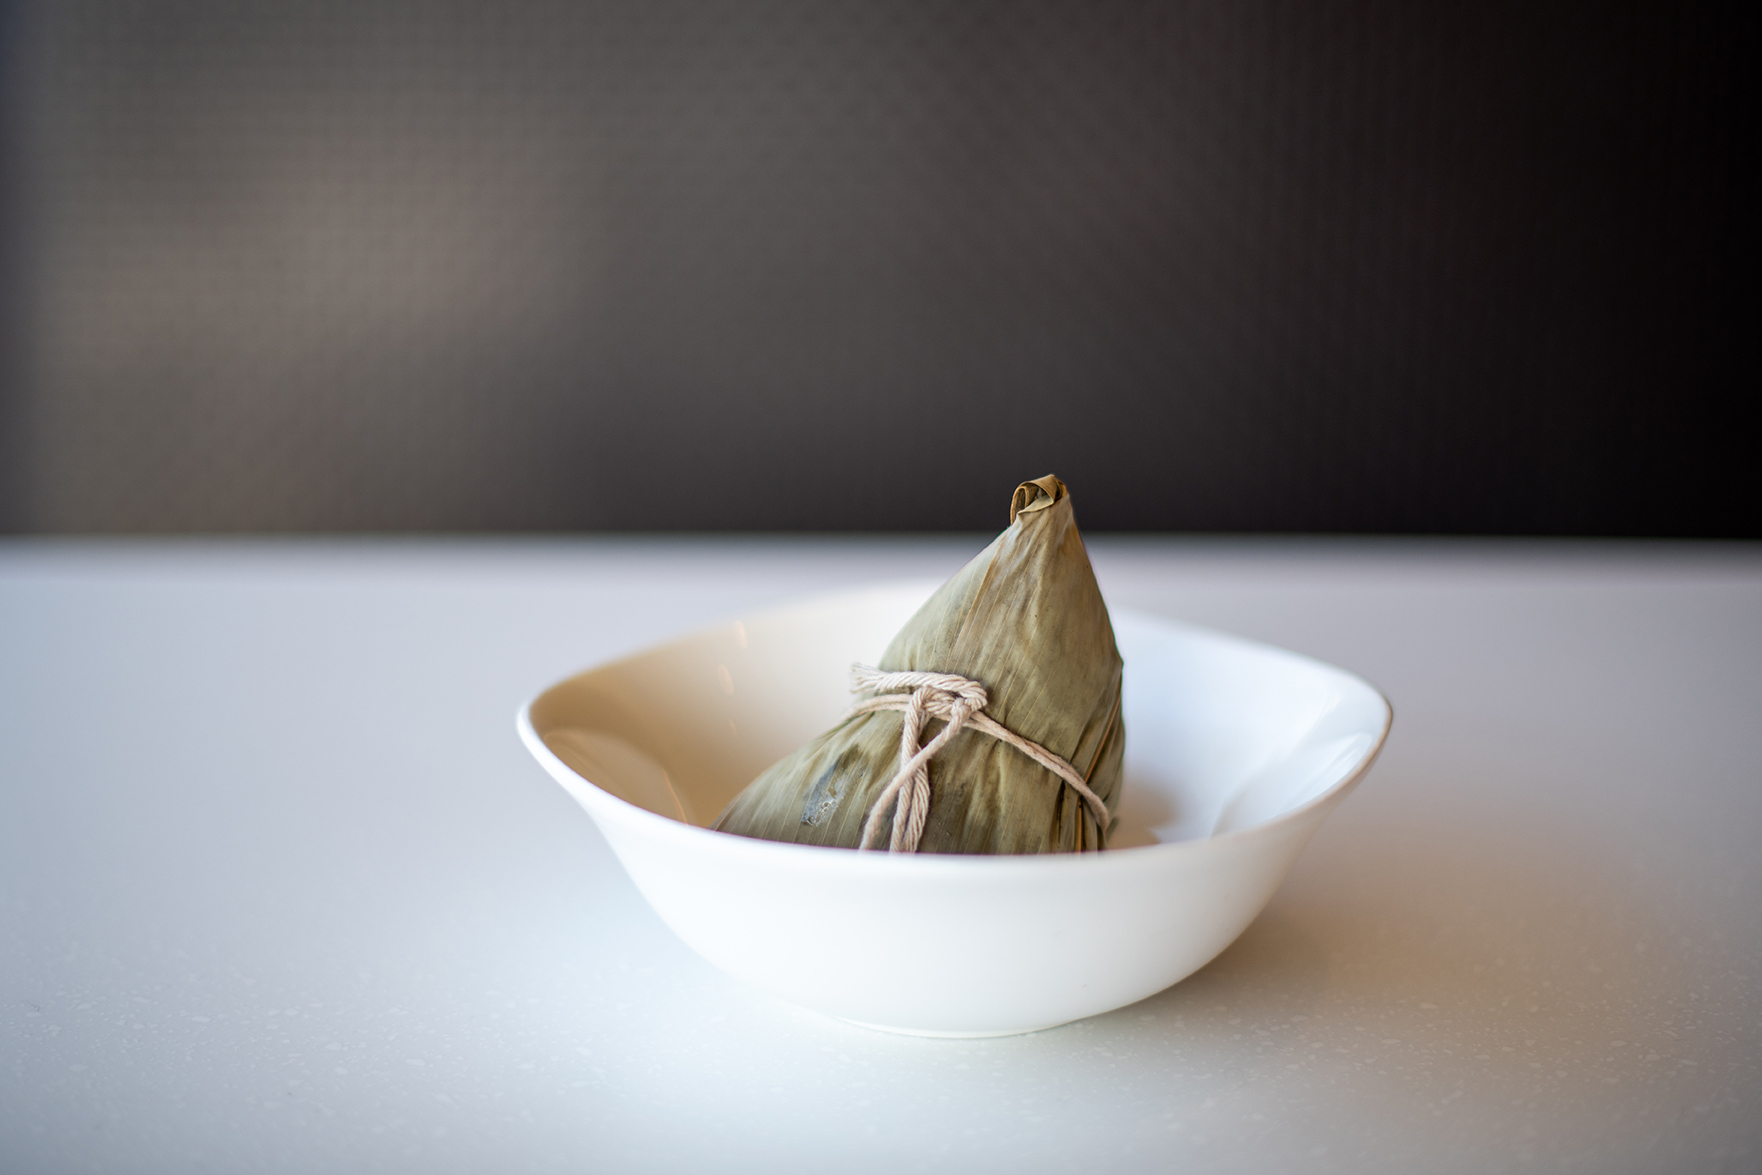 Taiwanese bah tsang (or leaf-wrapped rice dumpling) in a white bowl on a white countertop.